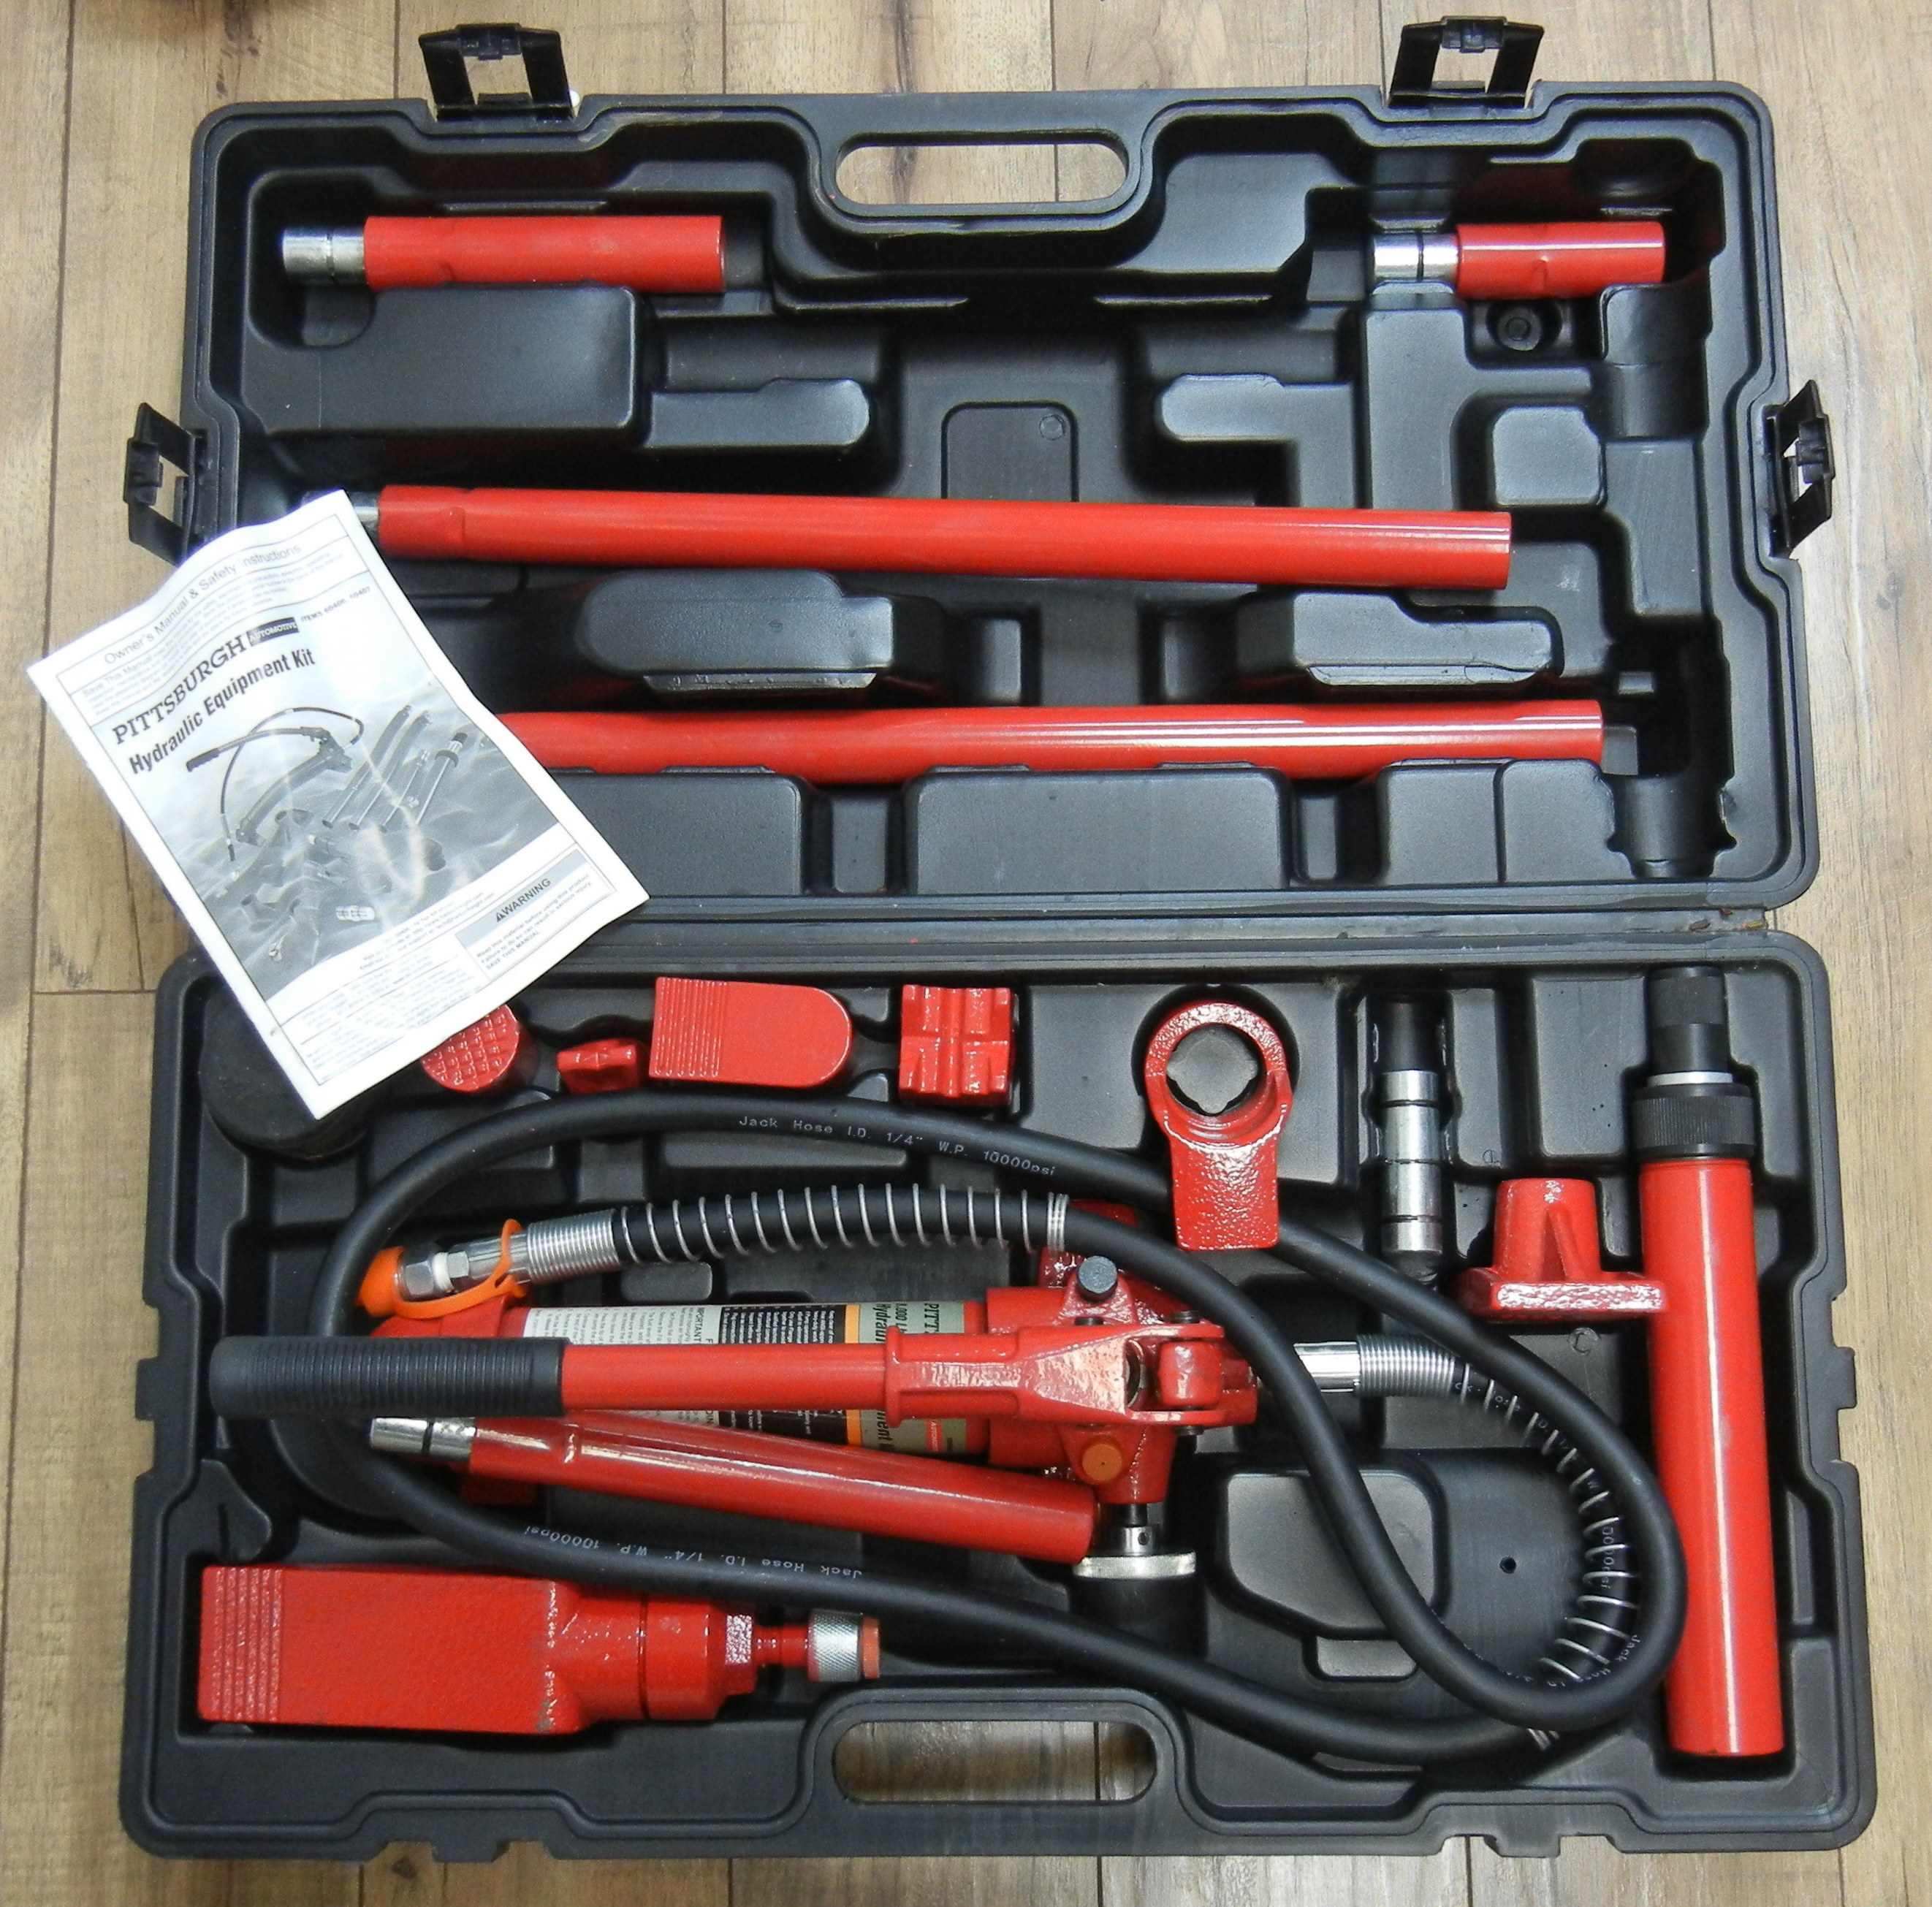 PITTSBURGH - 60406 - HYDRAULIC KIT TOOLS